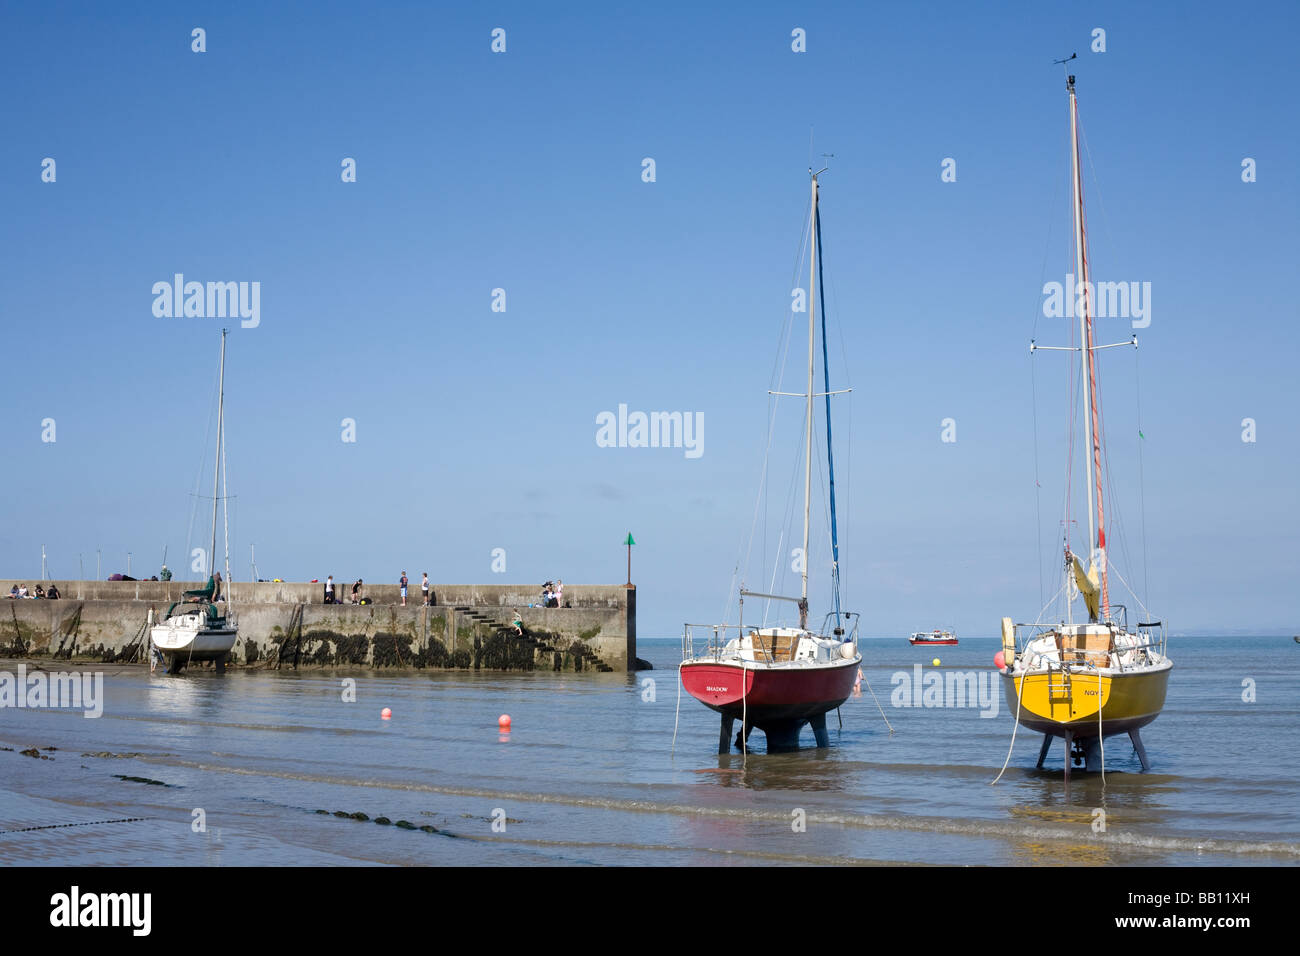 Sailing boats on the beach in New Quay , Cei Newydd at low tide. - Stock Image